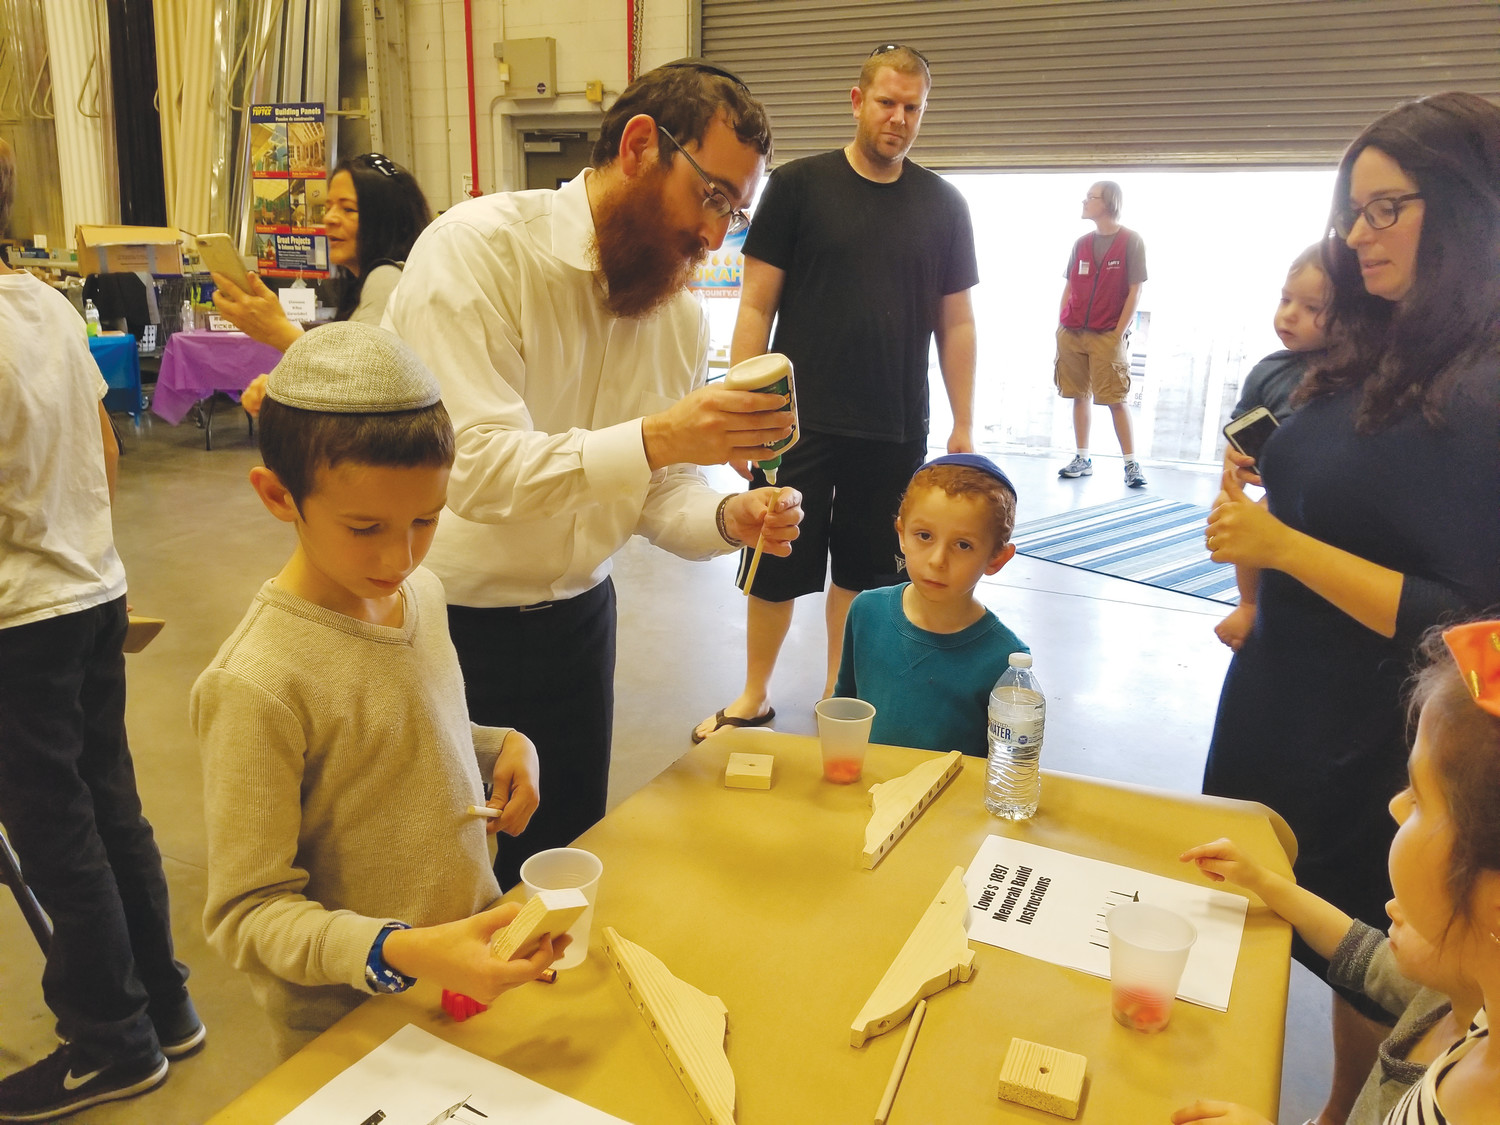 Rabbi Shmuly Feldman, second from left, assists children with making menorahs in preparation for the annual celebration of Hanukkah at a workshop held Dec. 2 at Lowe's on Kingsley Avenue.